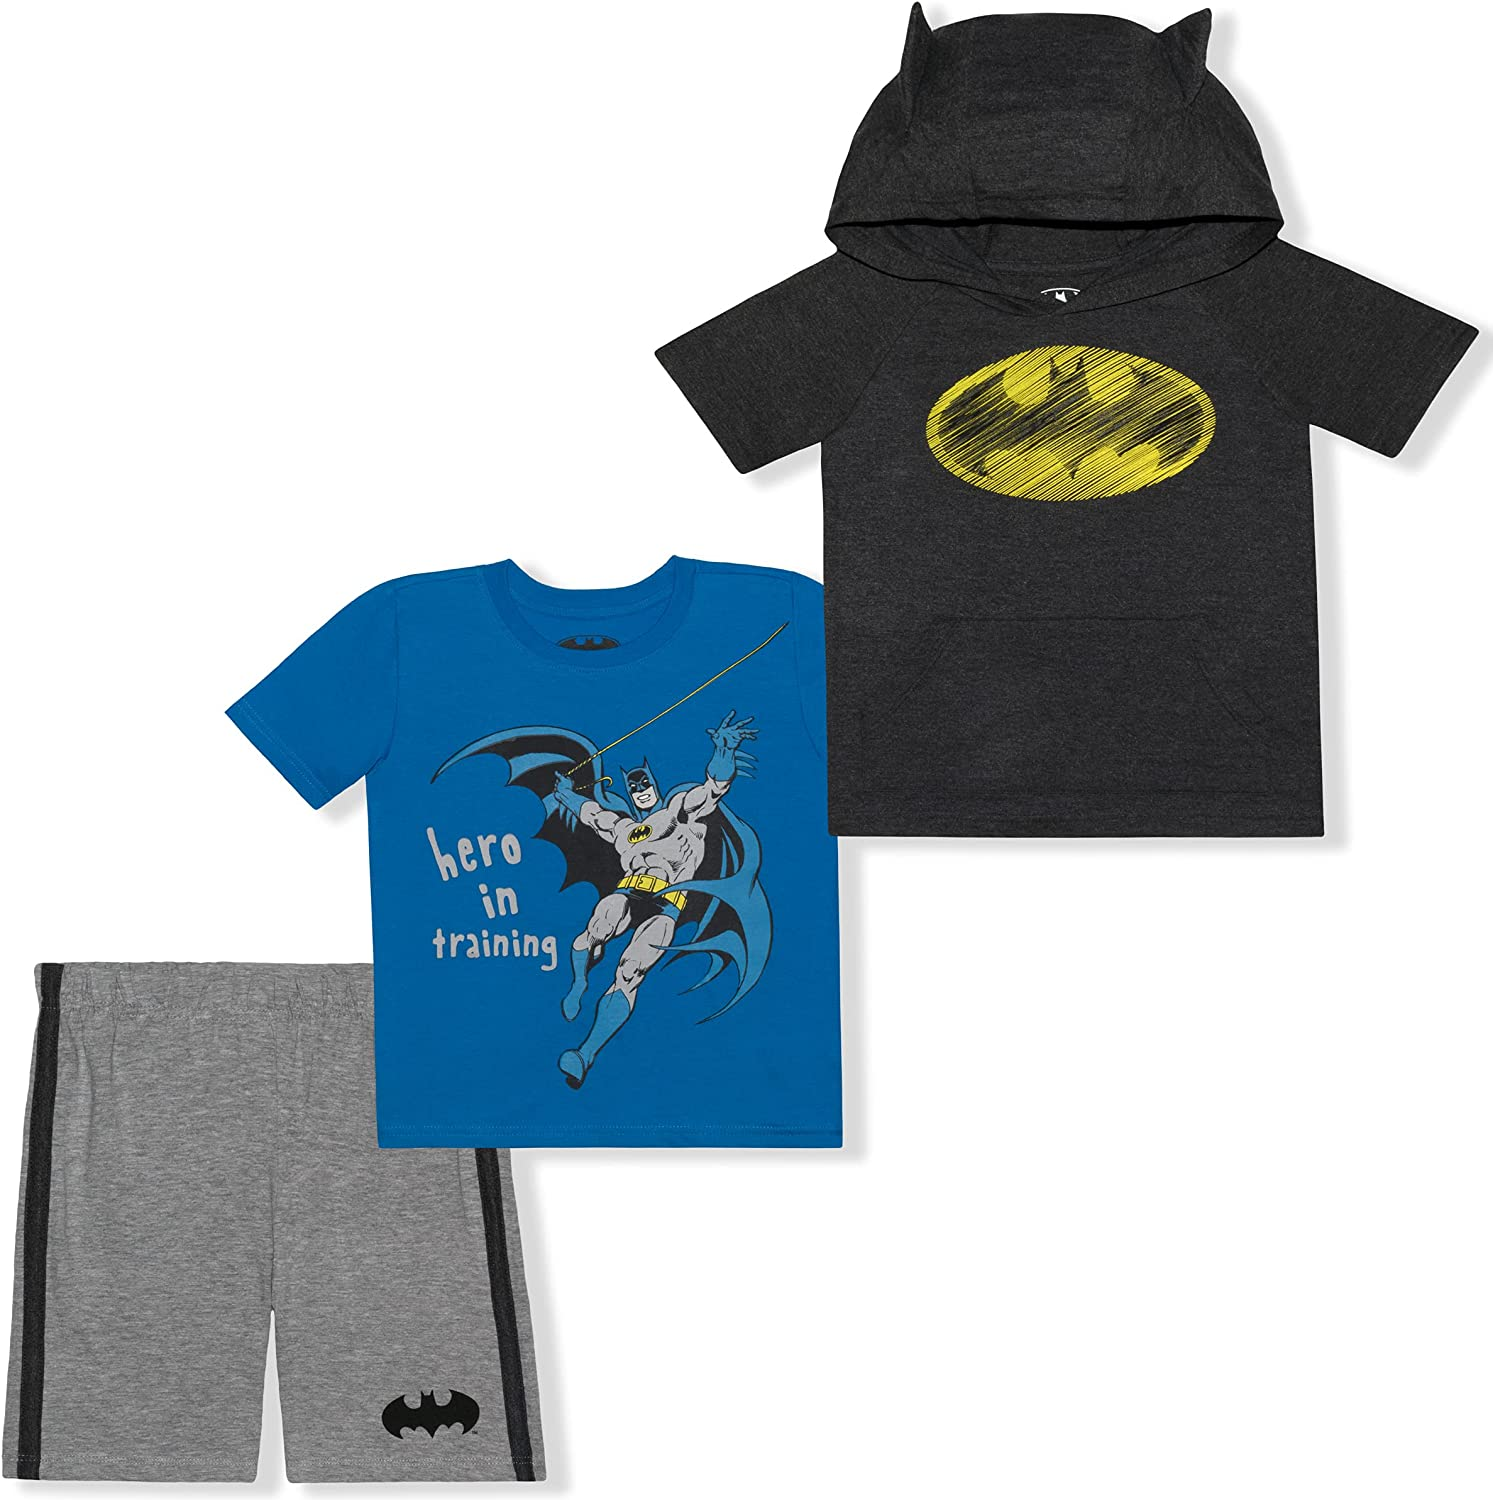 BATMAN 3 Pack Shorts Set with Graphic Tees for Boys, Superhero Hooded Shirt and Shorts